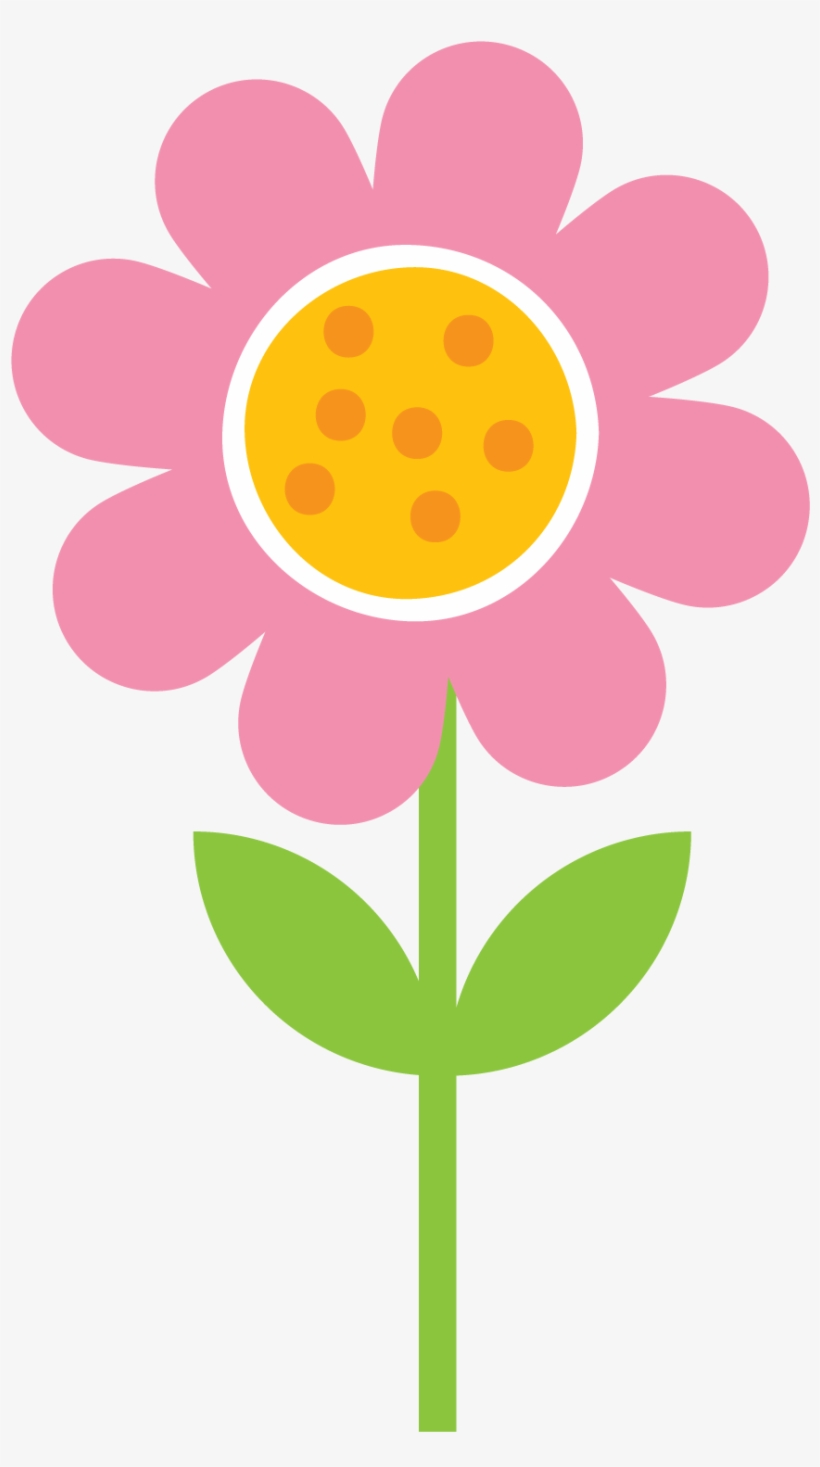 Flower Clipart Drawing Flower Dibujo Flores De Primavera Clip Art